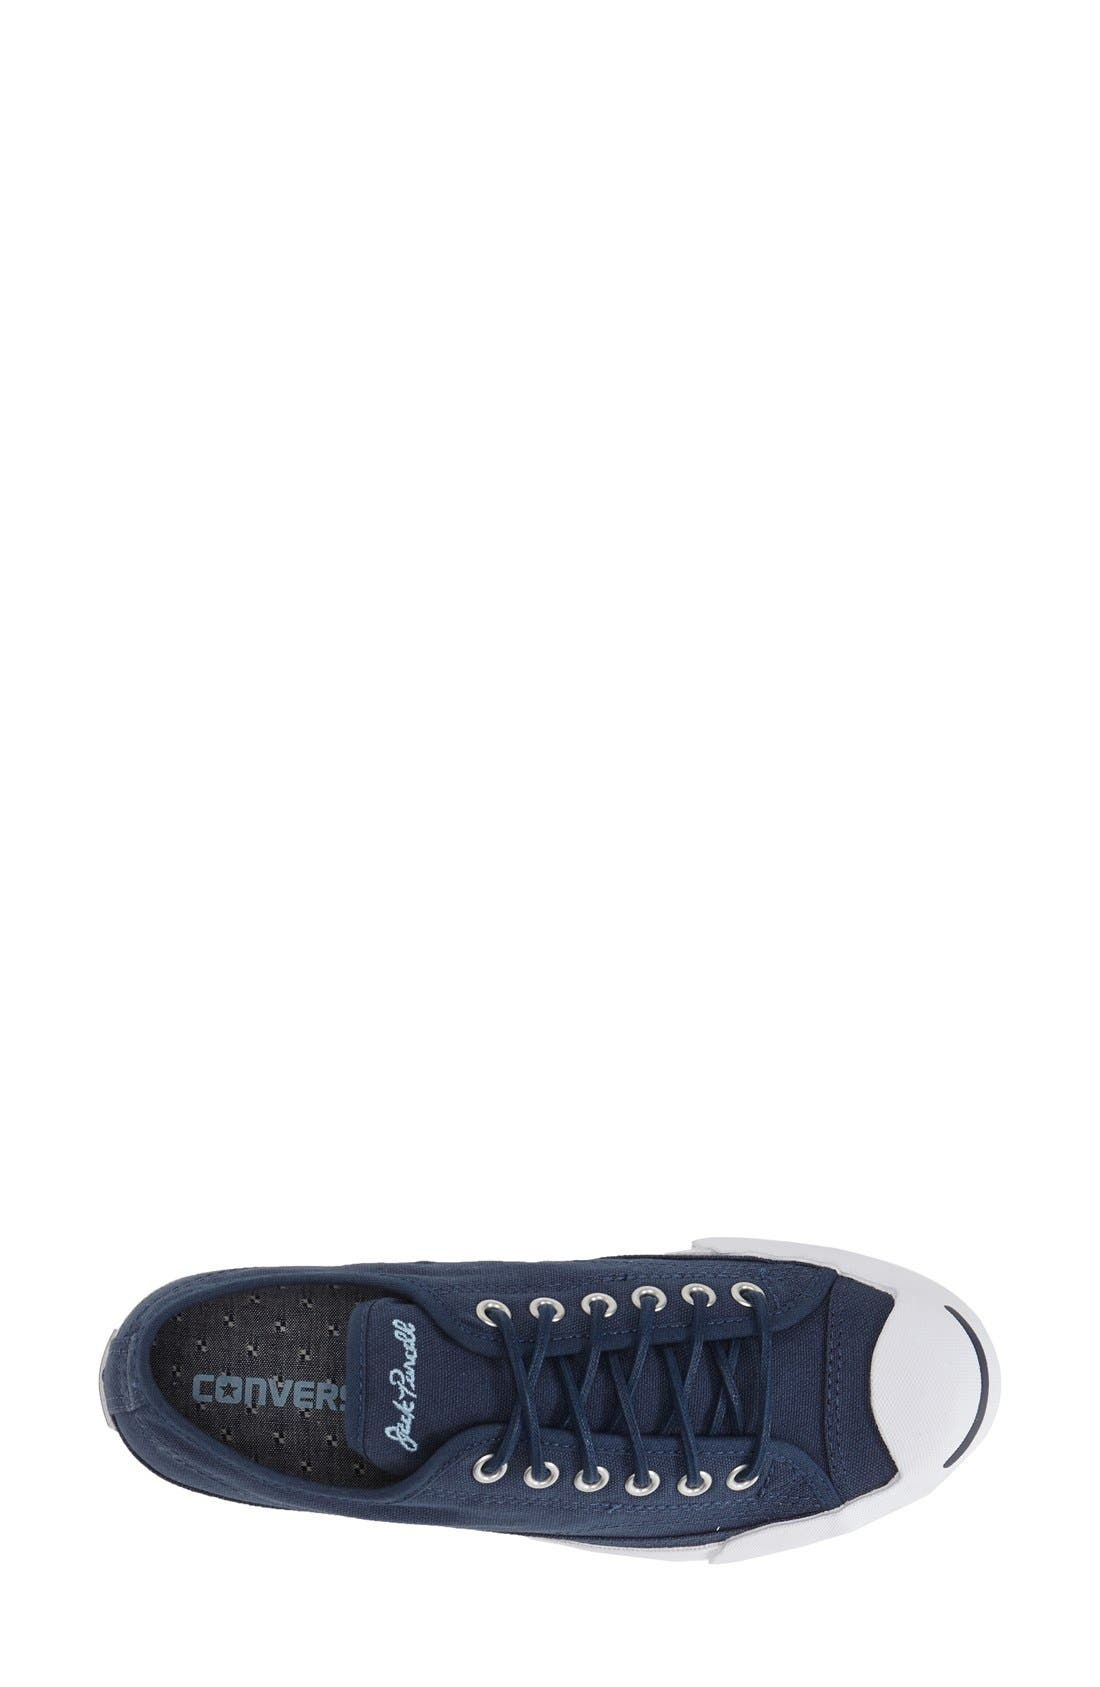 'Jack Purcell' Low Top Slip On Sneaker,                             Alternate thumbnail 5, color,